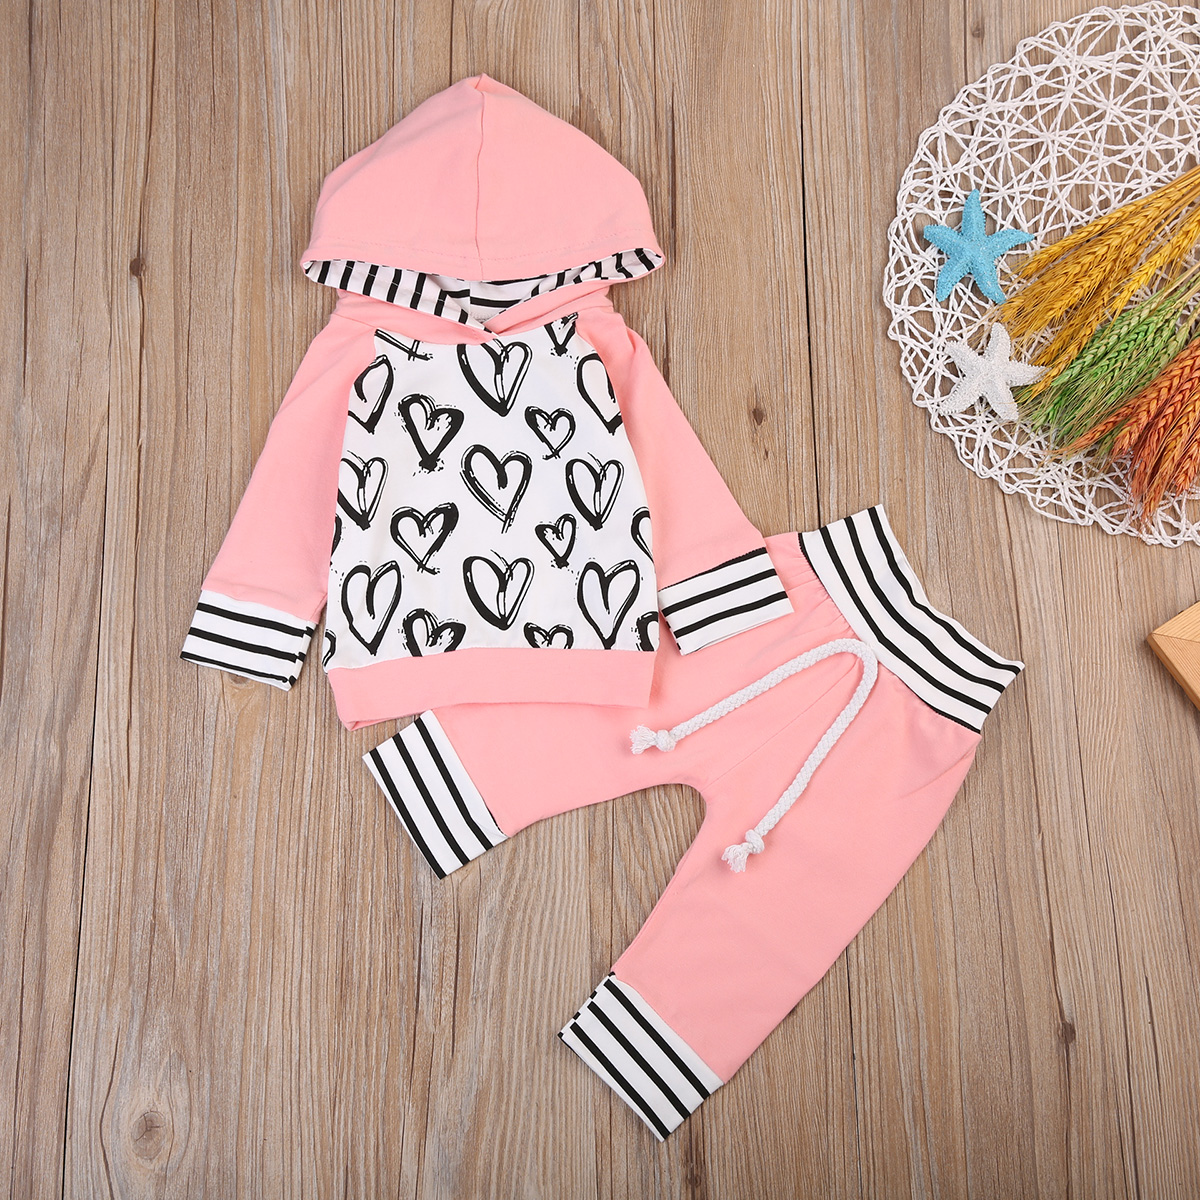 2Pcs Newborn Kids Baby Girl Clothes Long Sleeve Hooded Heart Hoodies Striped Casual Pants Outfit Set Spring Autumn New